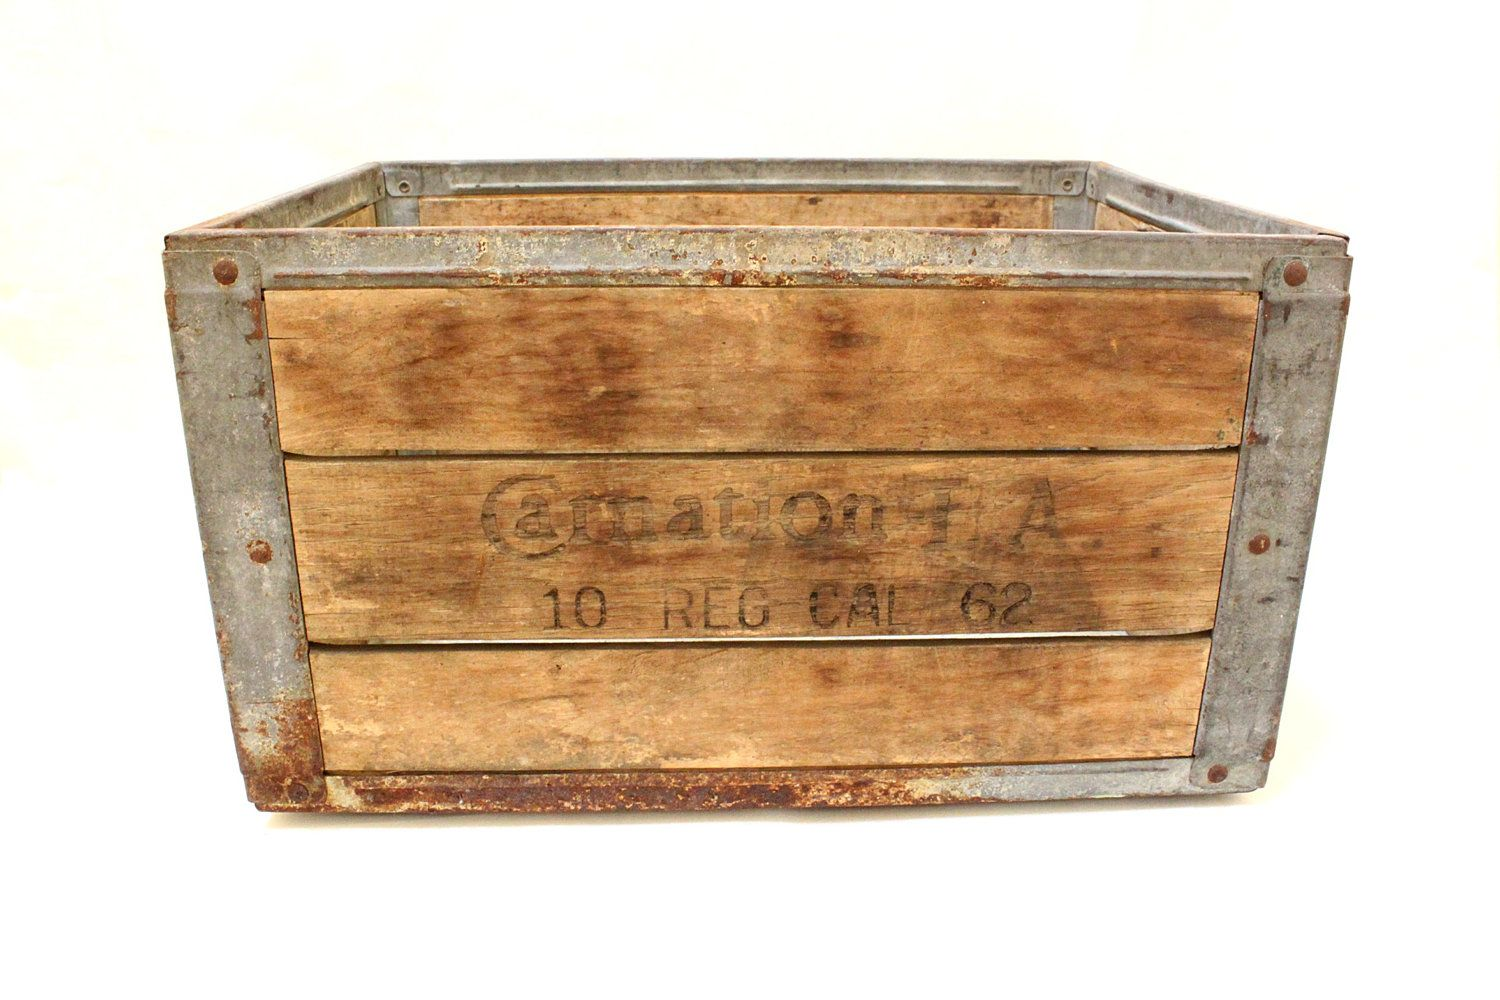 Vintage Carnation Milk Wood Crate Box With Metal Straps Wood Crates Milk Crates Crates